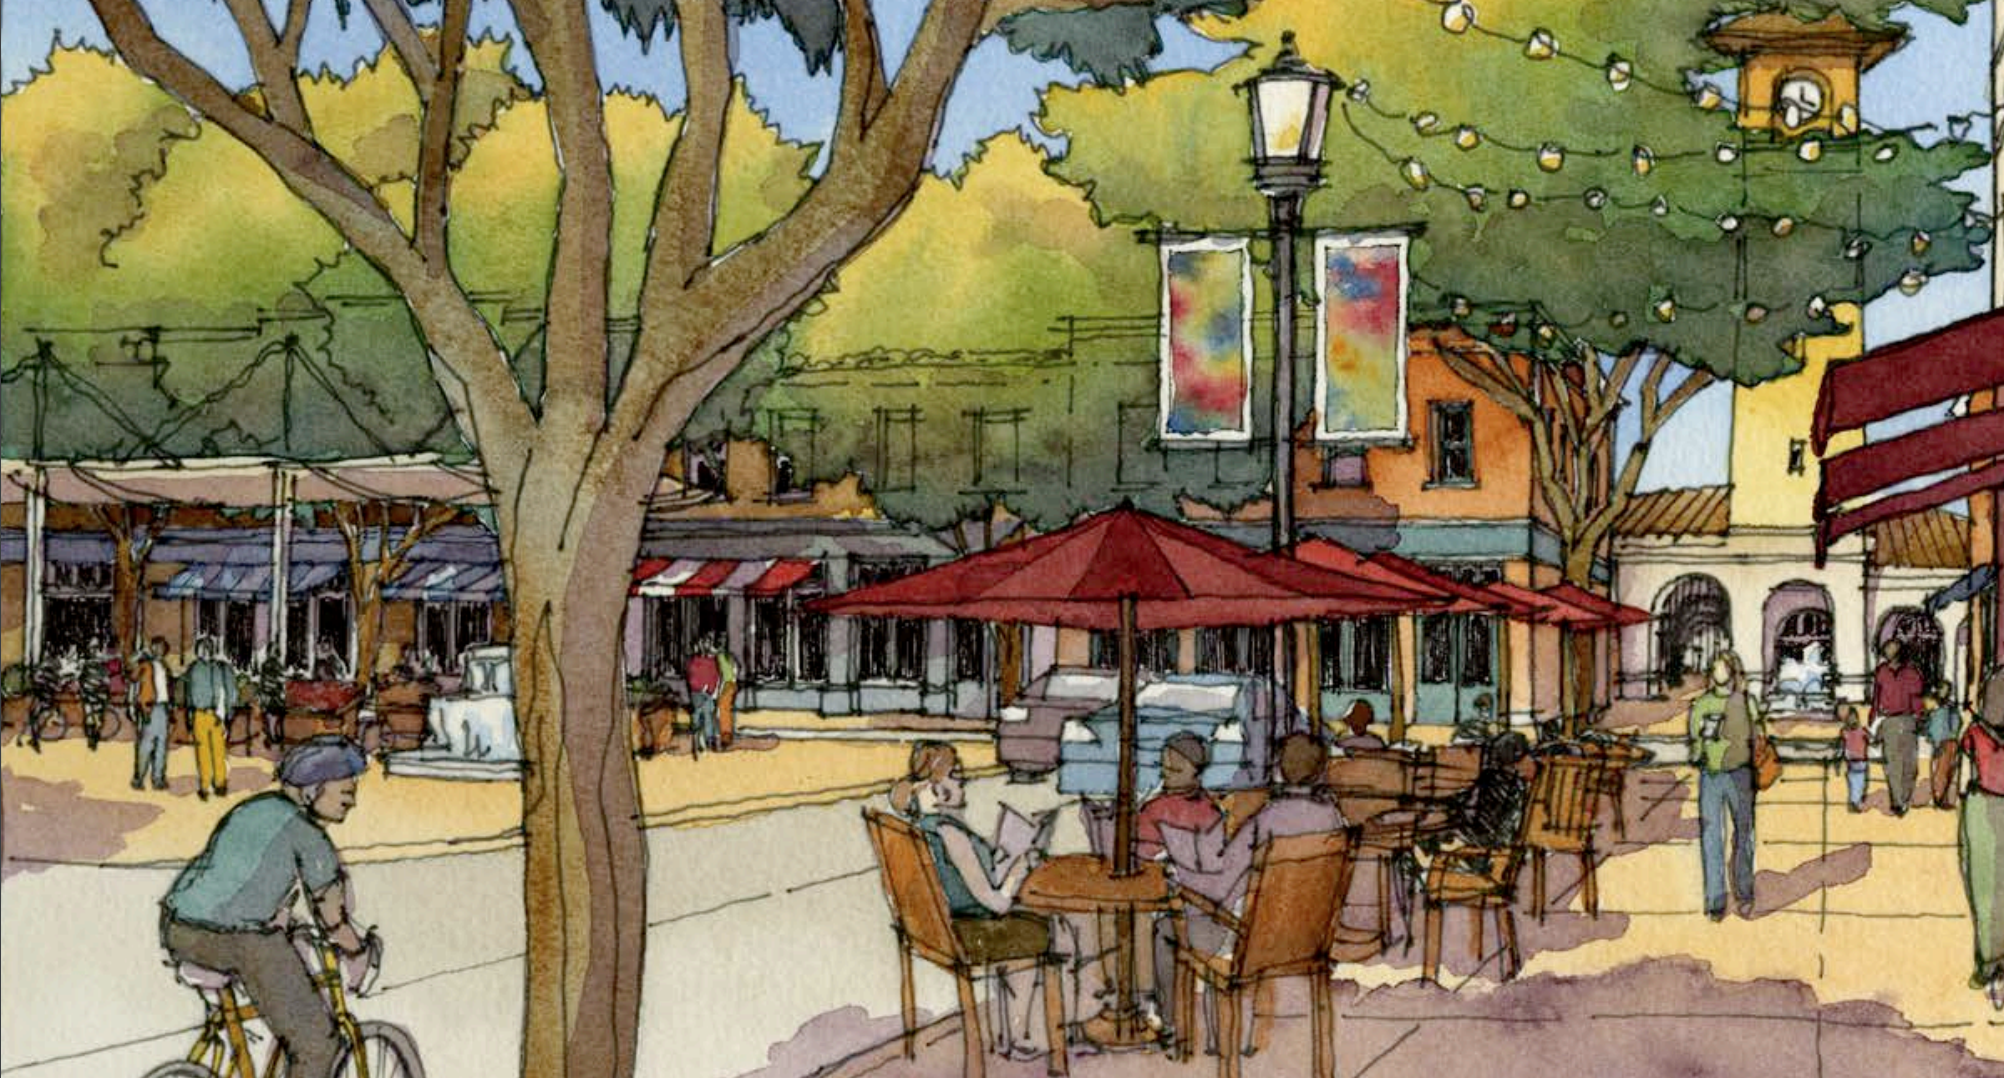 Read more about the Modesto Downtown Master Plan, including notes and presentation from the Kickoff Downtown Walking Tour and Visioning Workshop (July 22, 2019)  here .